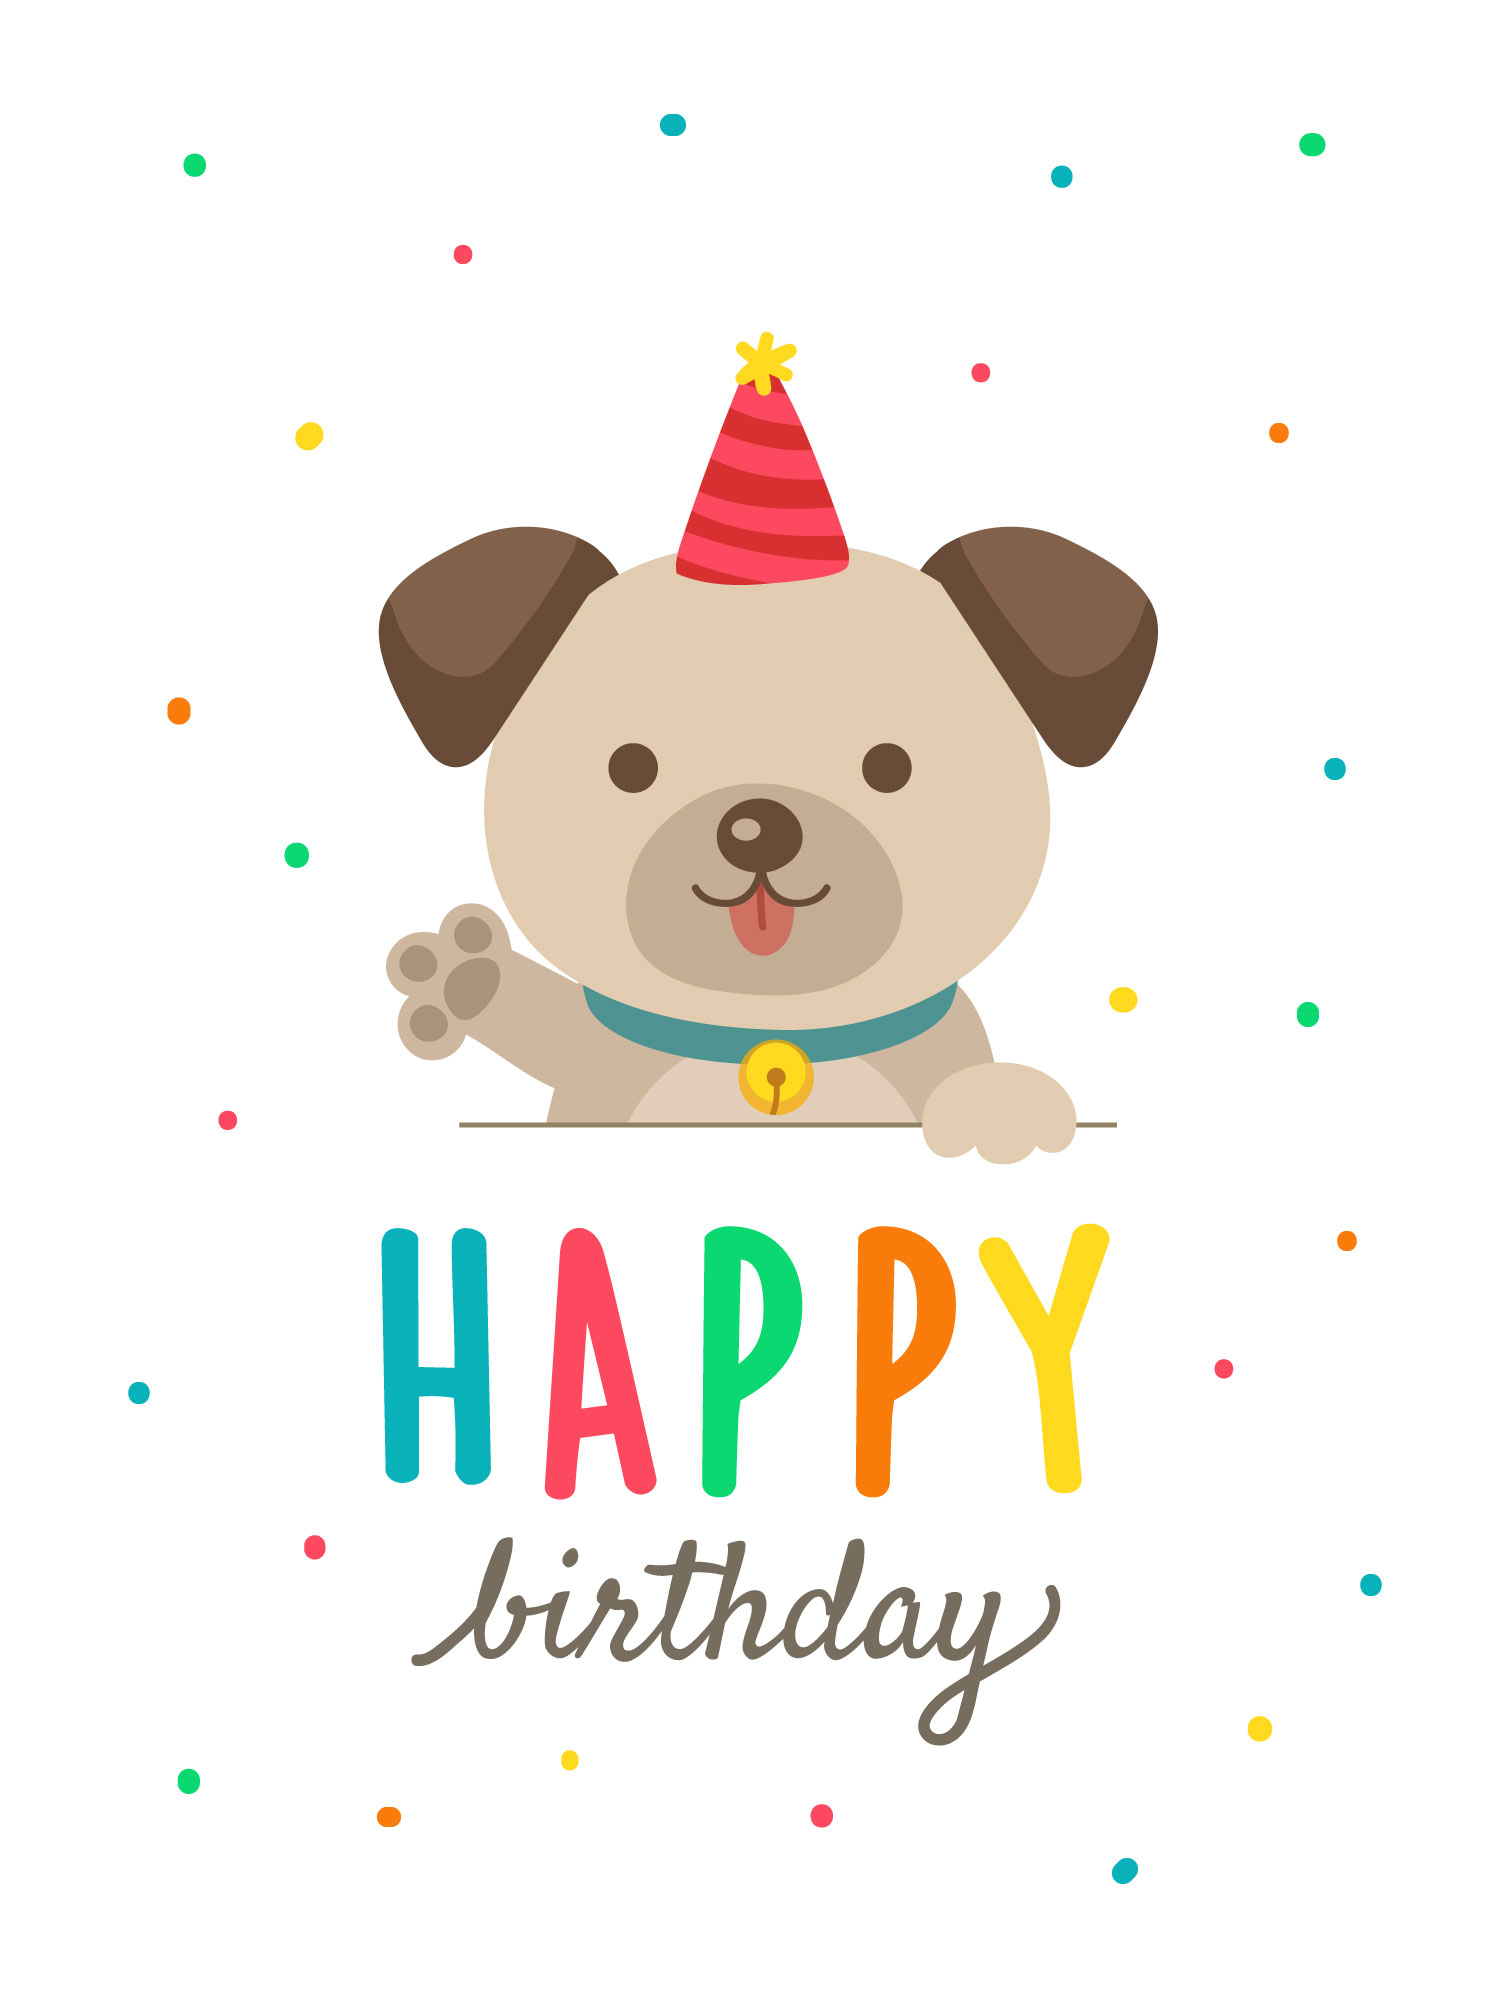 Birthday Cards With Cute Cartoon Dog Download Free Vectors Clipart Graphics Vector Art